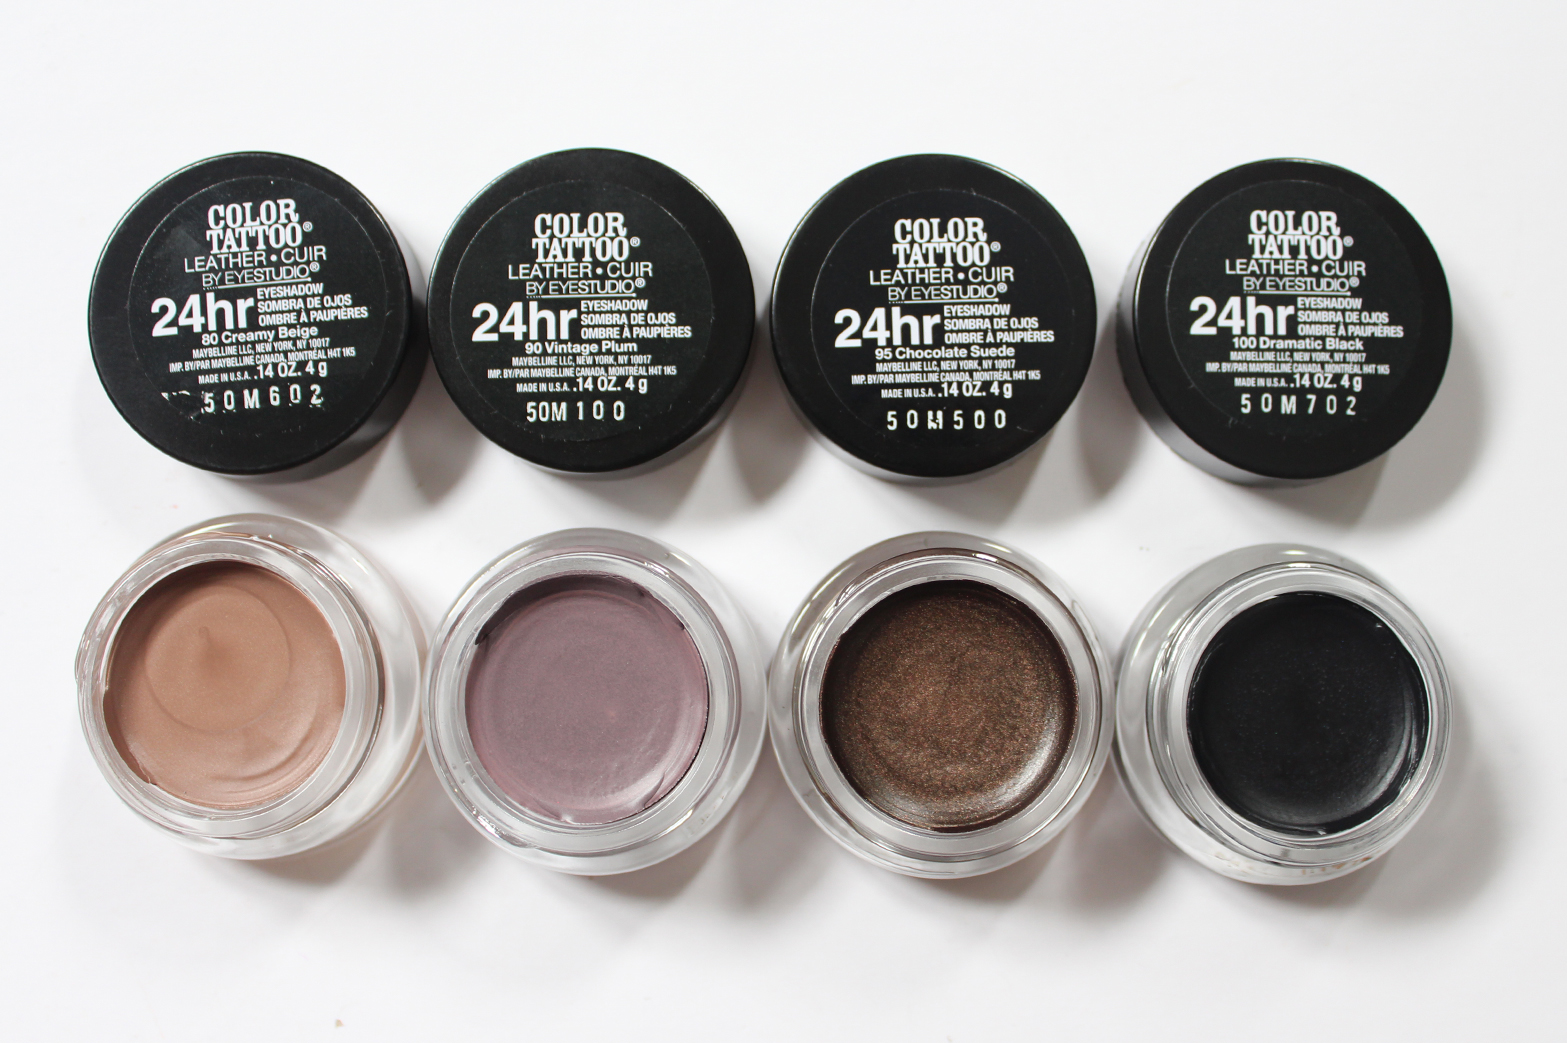 MAYBELLINE | Color Tattoo 24hr Eyeshadow Leather - Review + Swatches - CassandraMyee